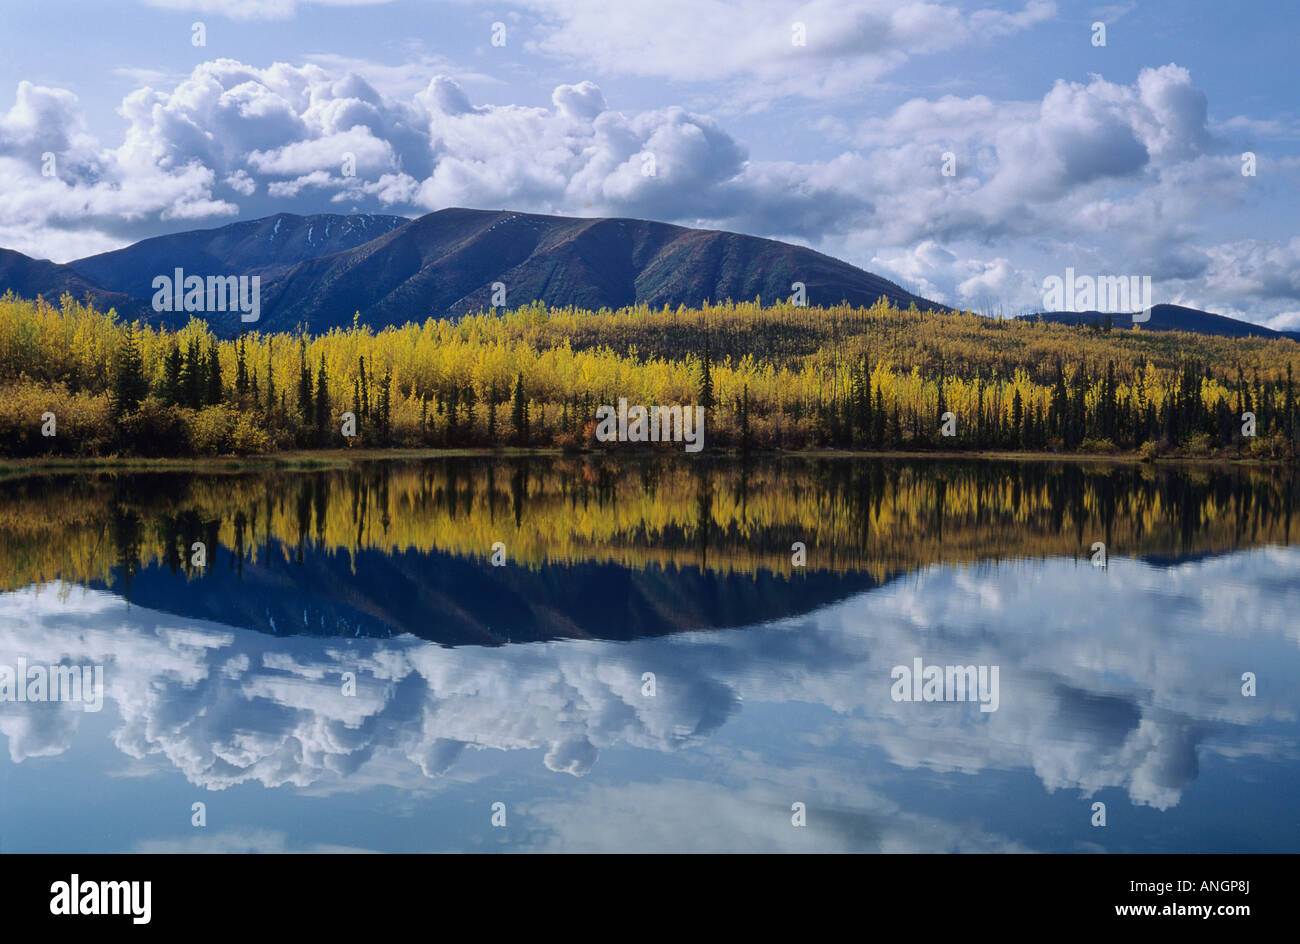 Pelly Mountains along Robert Campbell Highway, Yukon Territory, Canada. - Stock Image